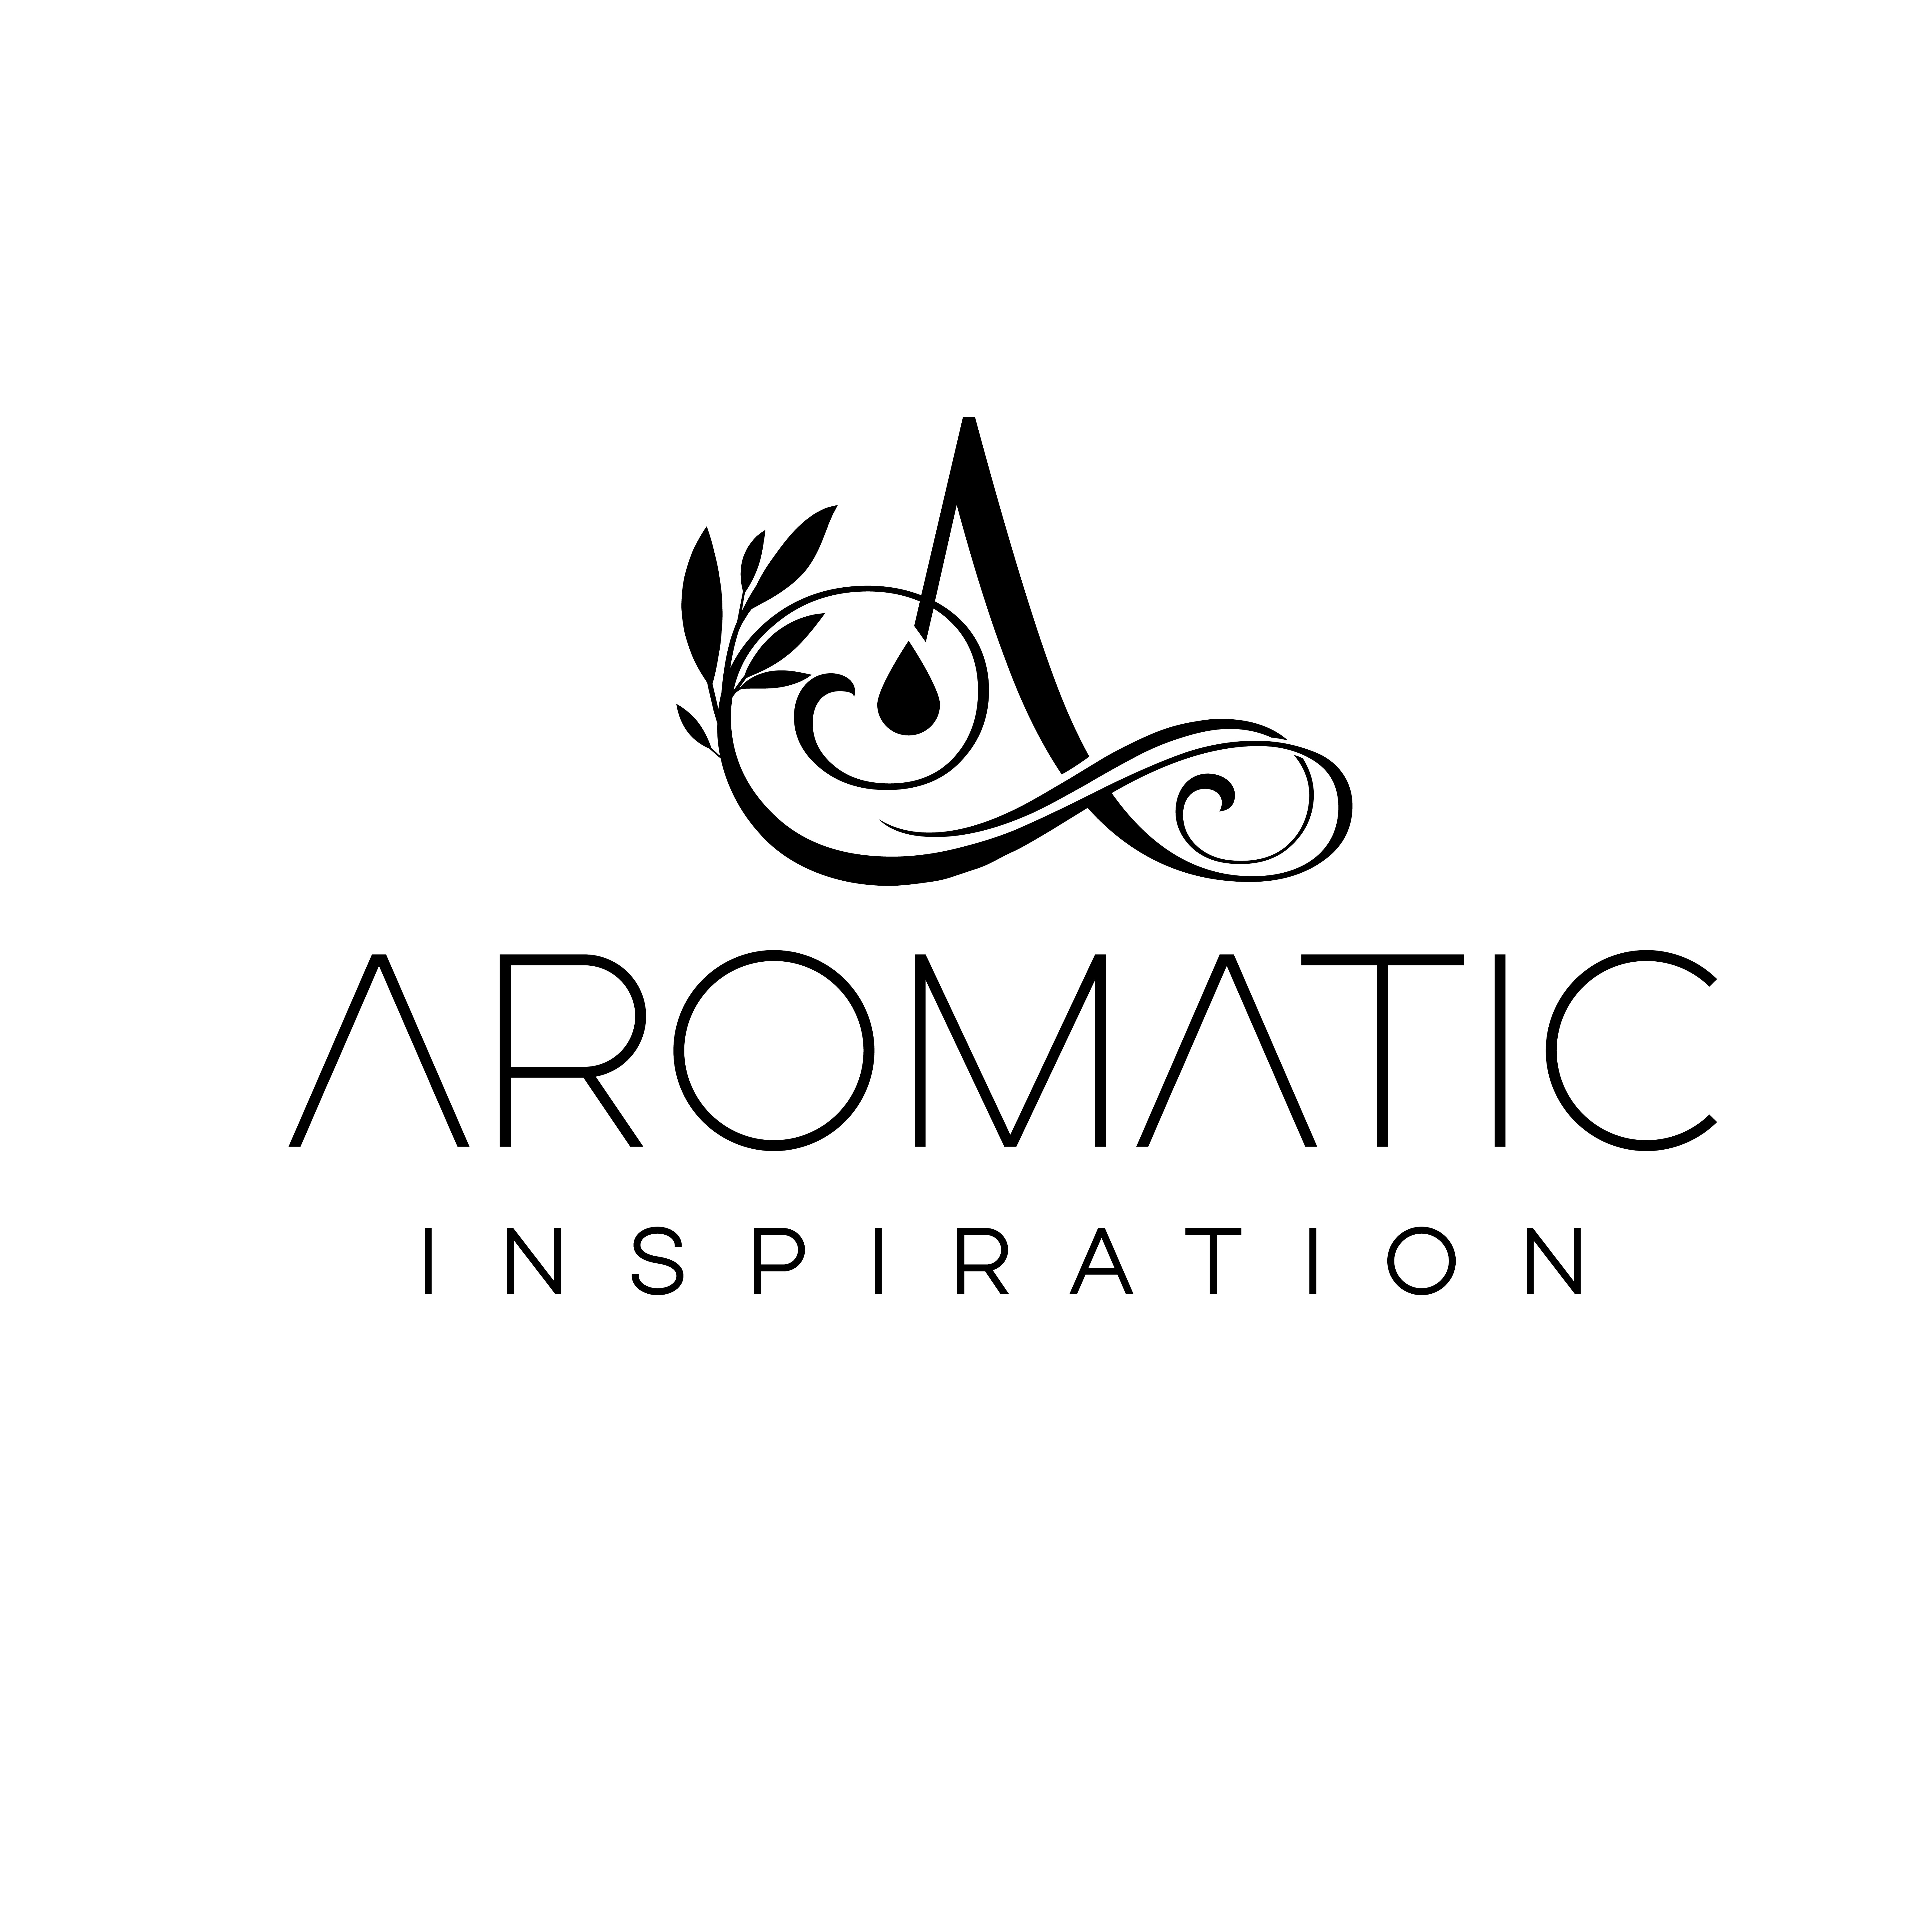 Design an aromatherapy logo that would attract